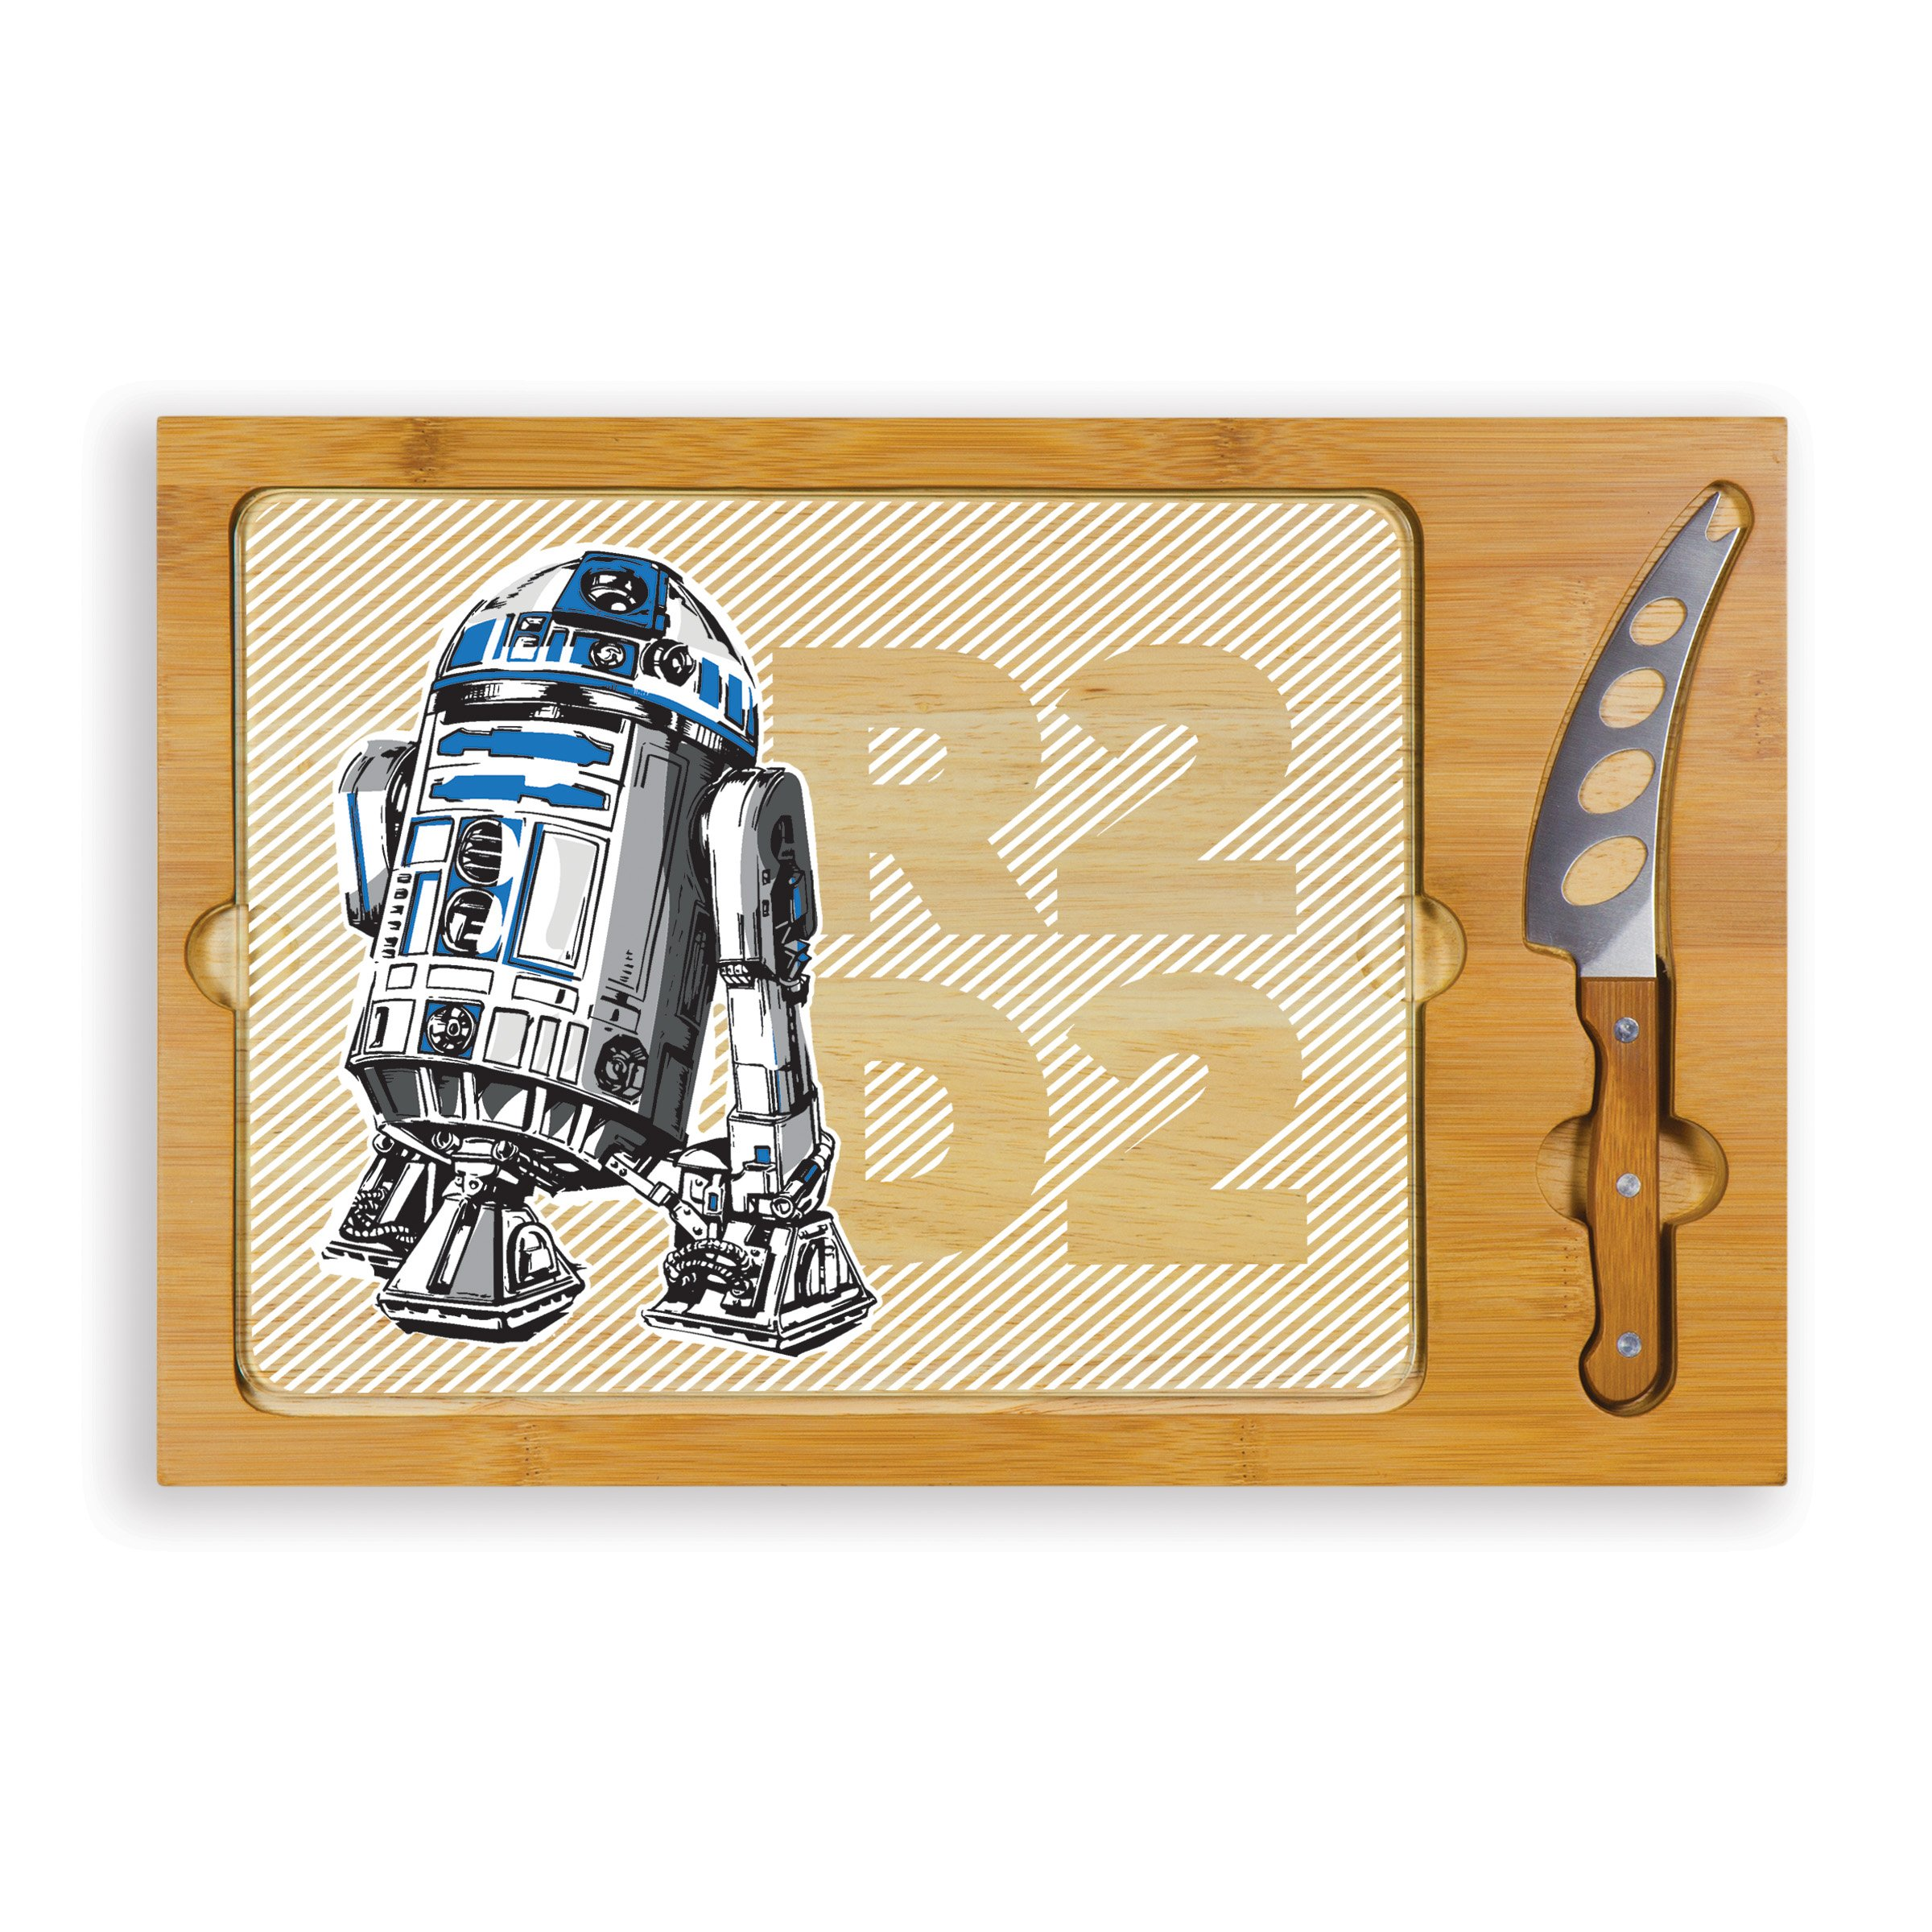 Lucas/Star Wars R2-D2 Icon 3-Piece Cheese Serving Set